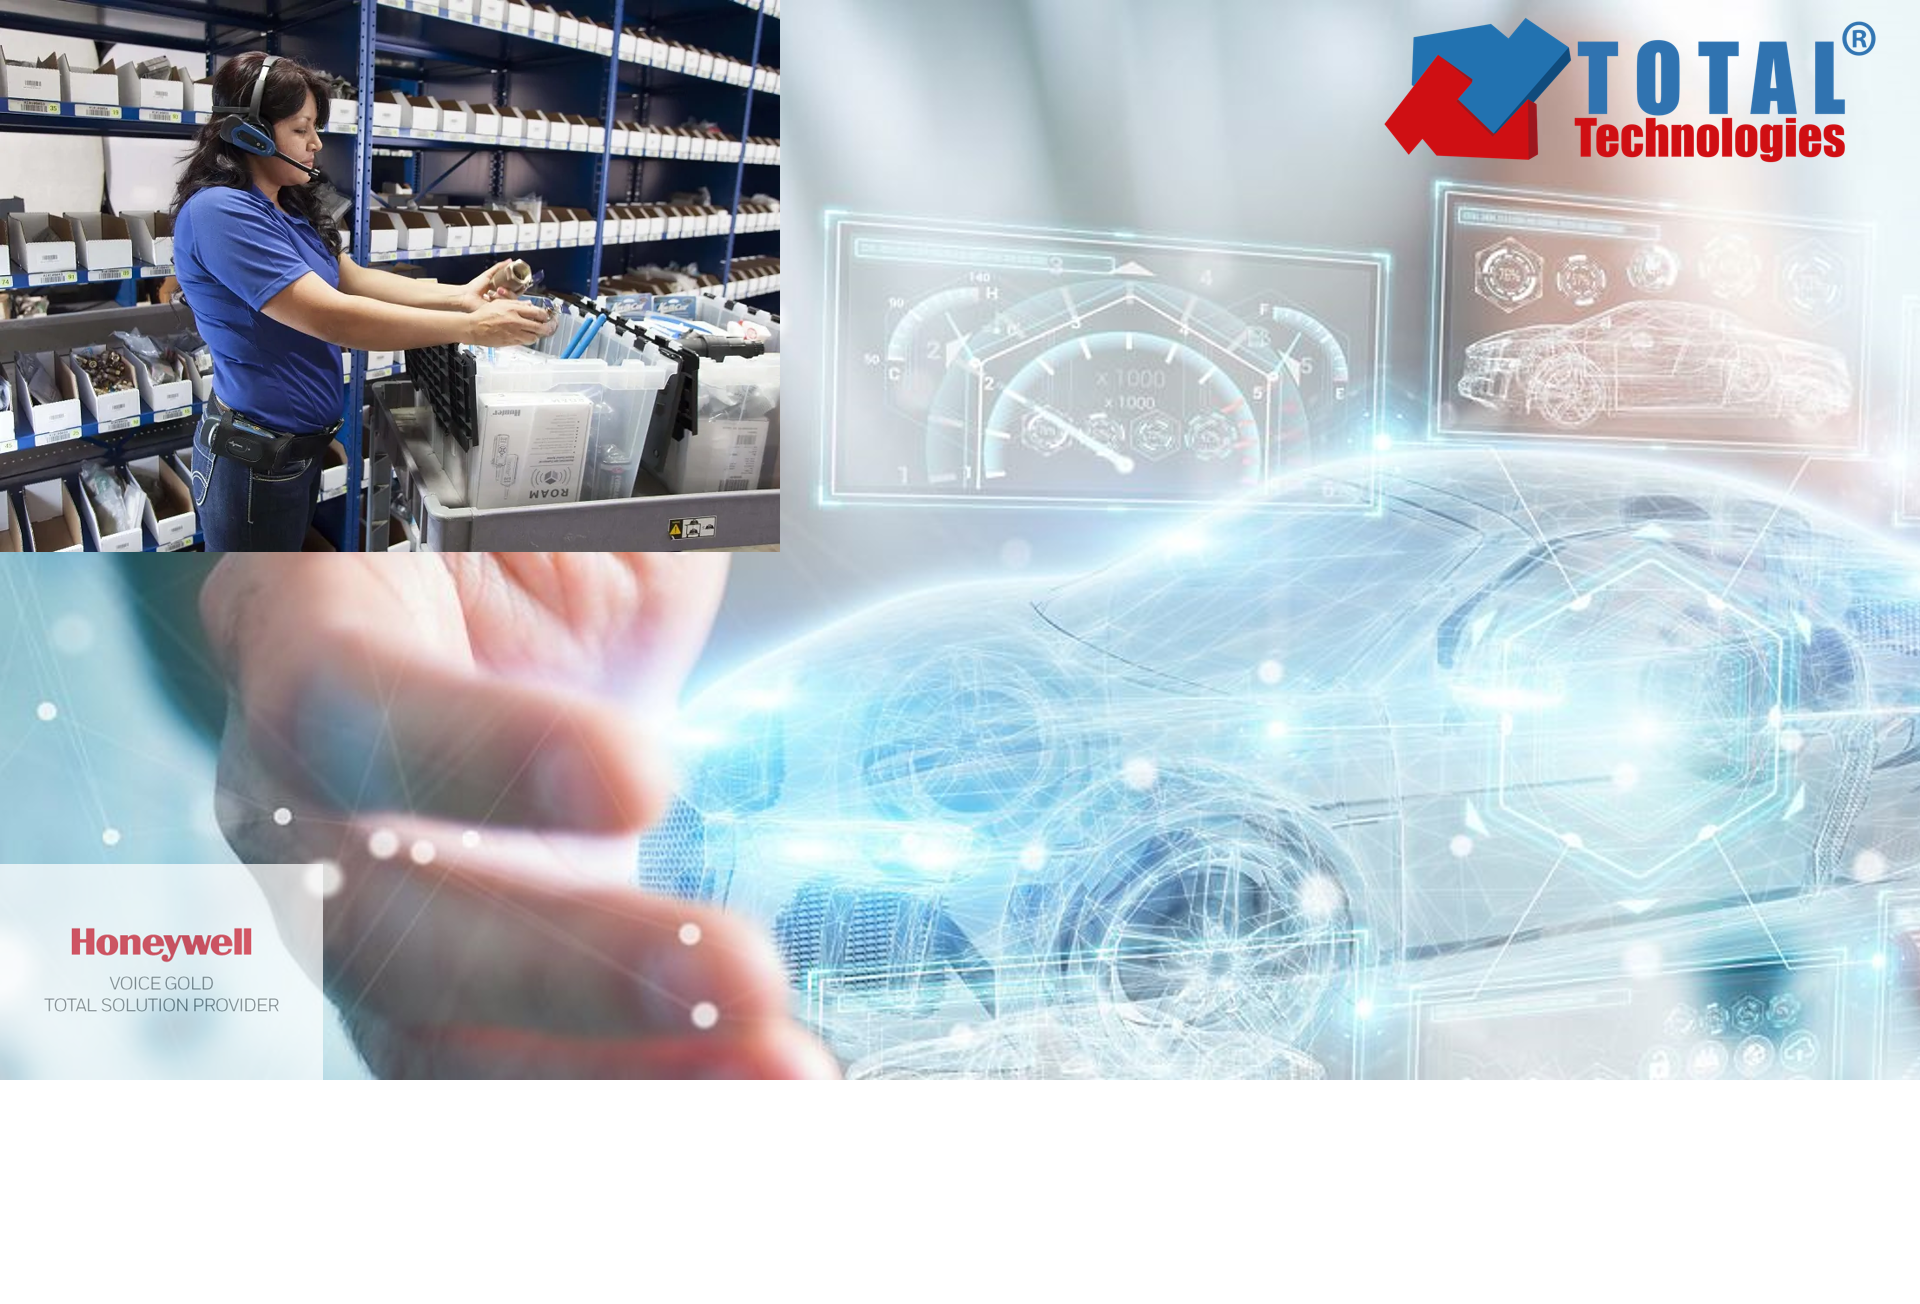 It transforms workforce performance and delivers superior results in automotive